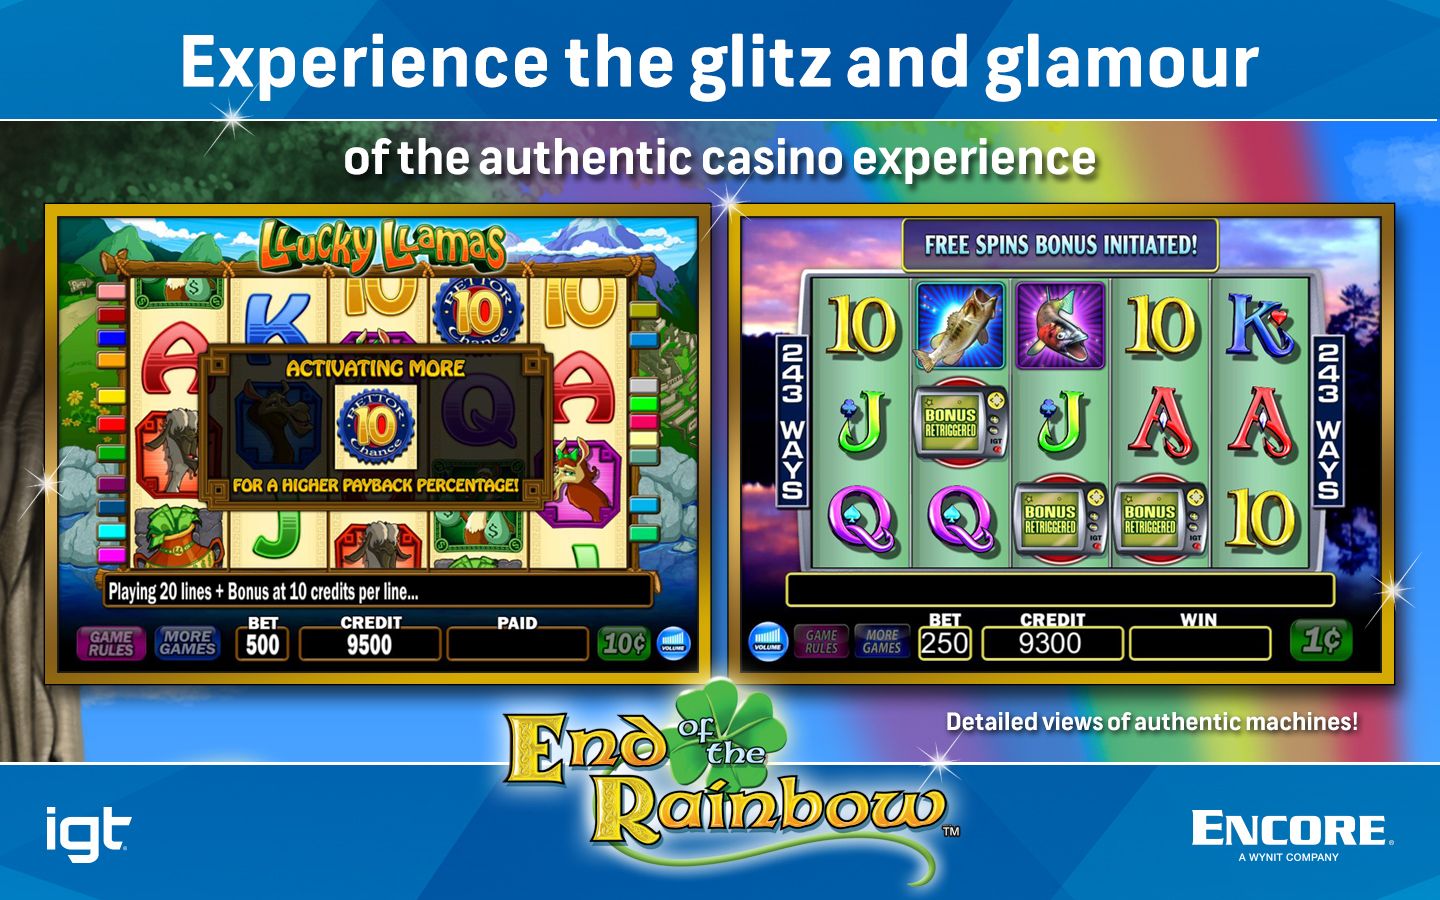 igt slot demo